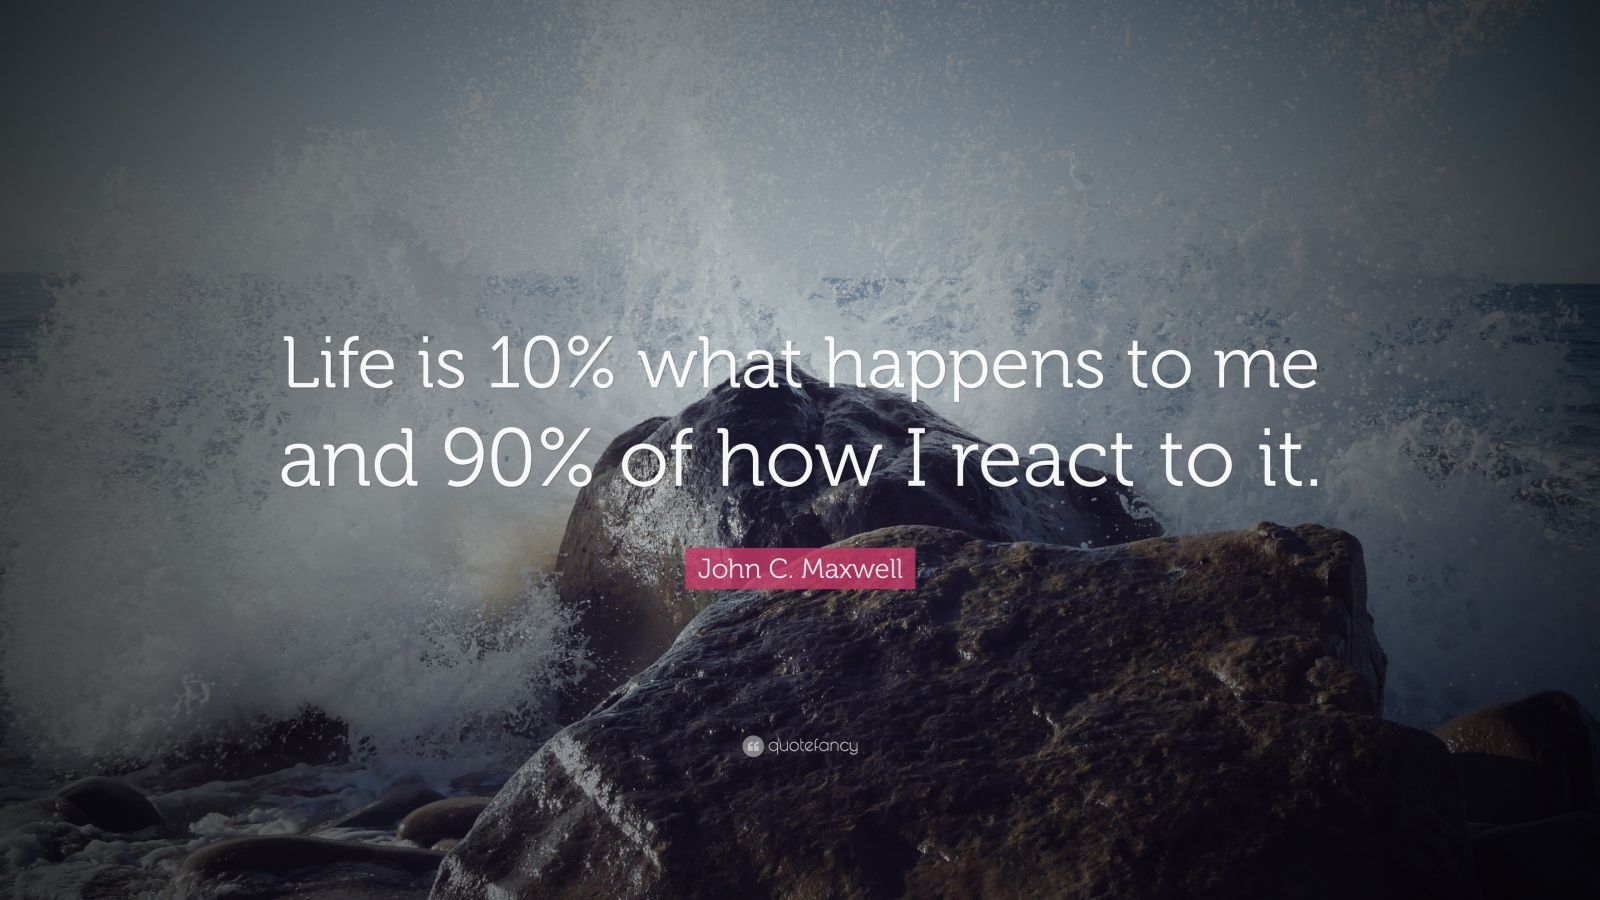 "Quotes About Strength: ""Life is 10% what happens to me and 90% of how I react to it."" — John C. Maxwell"